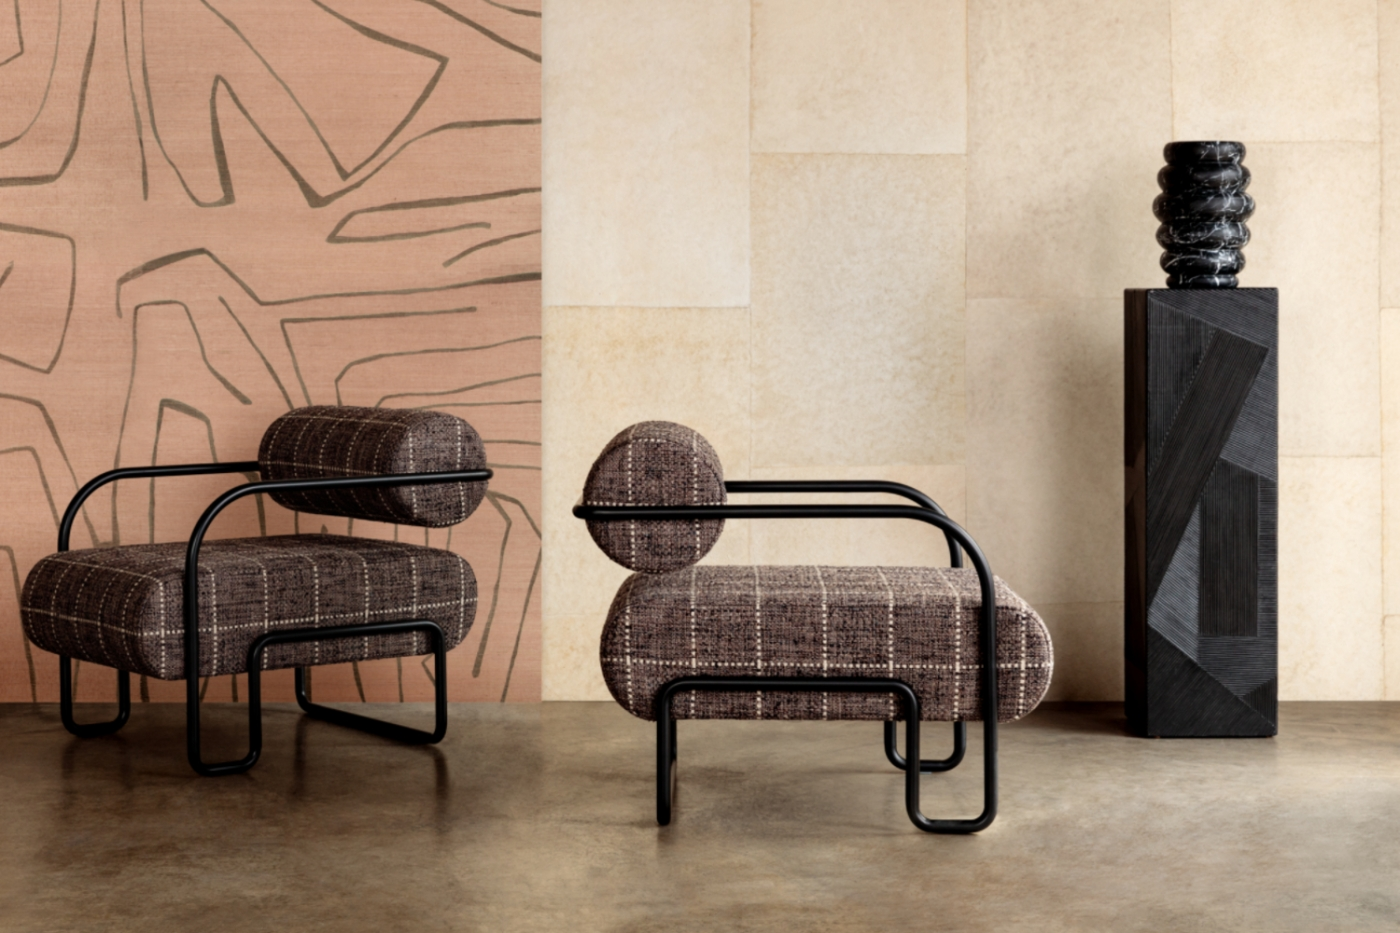 kelly wearstler Kelly Wearstler Presents A Furniture and Lighting Fall Collection feature image 2020 10 27T153709